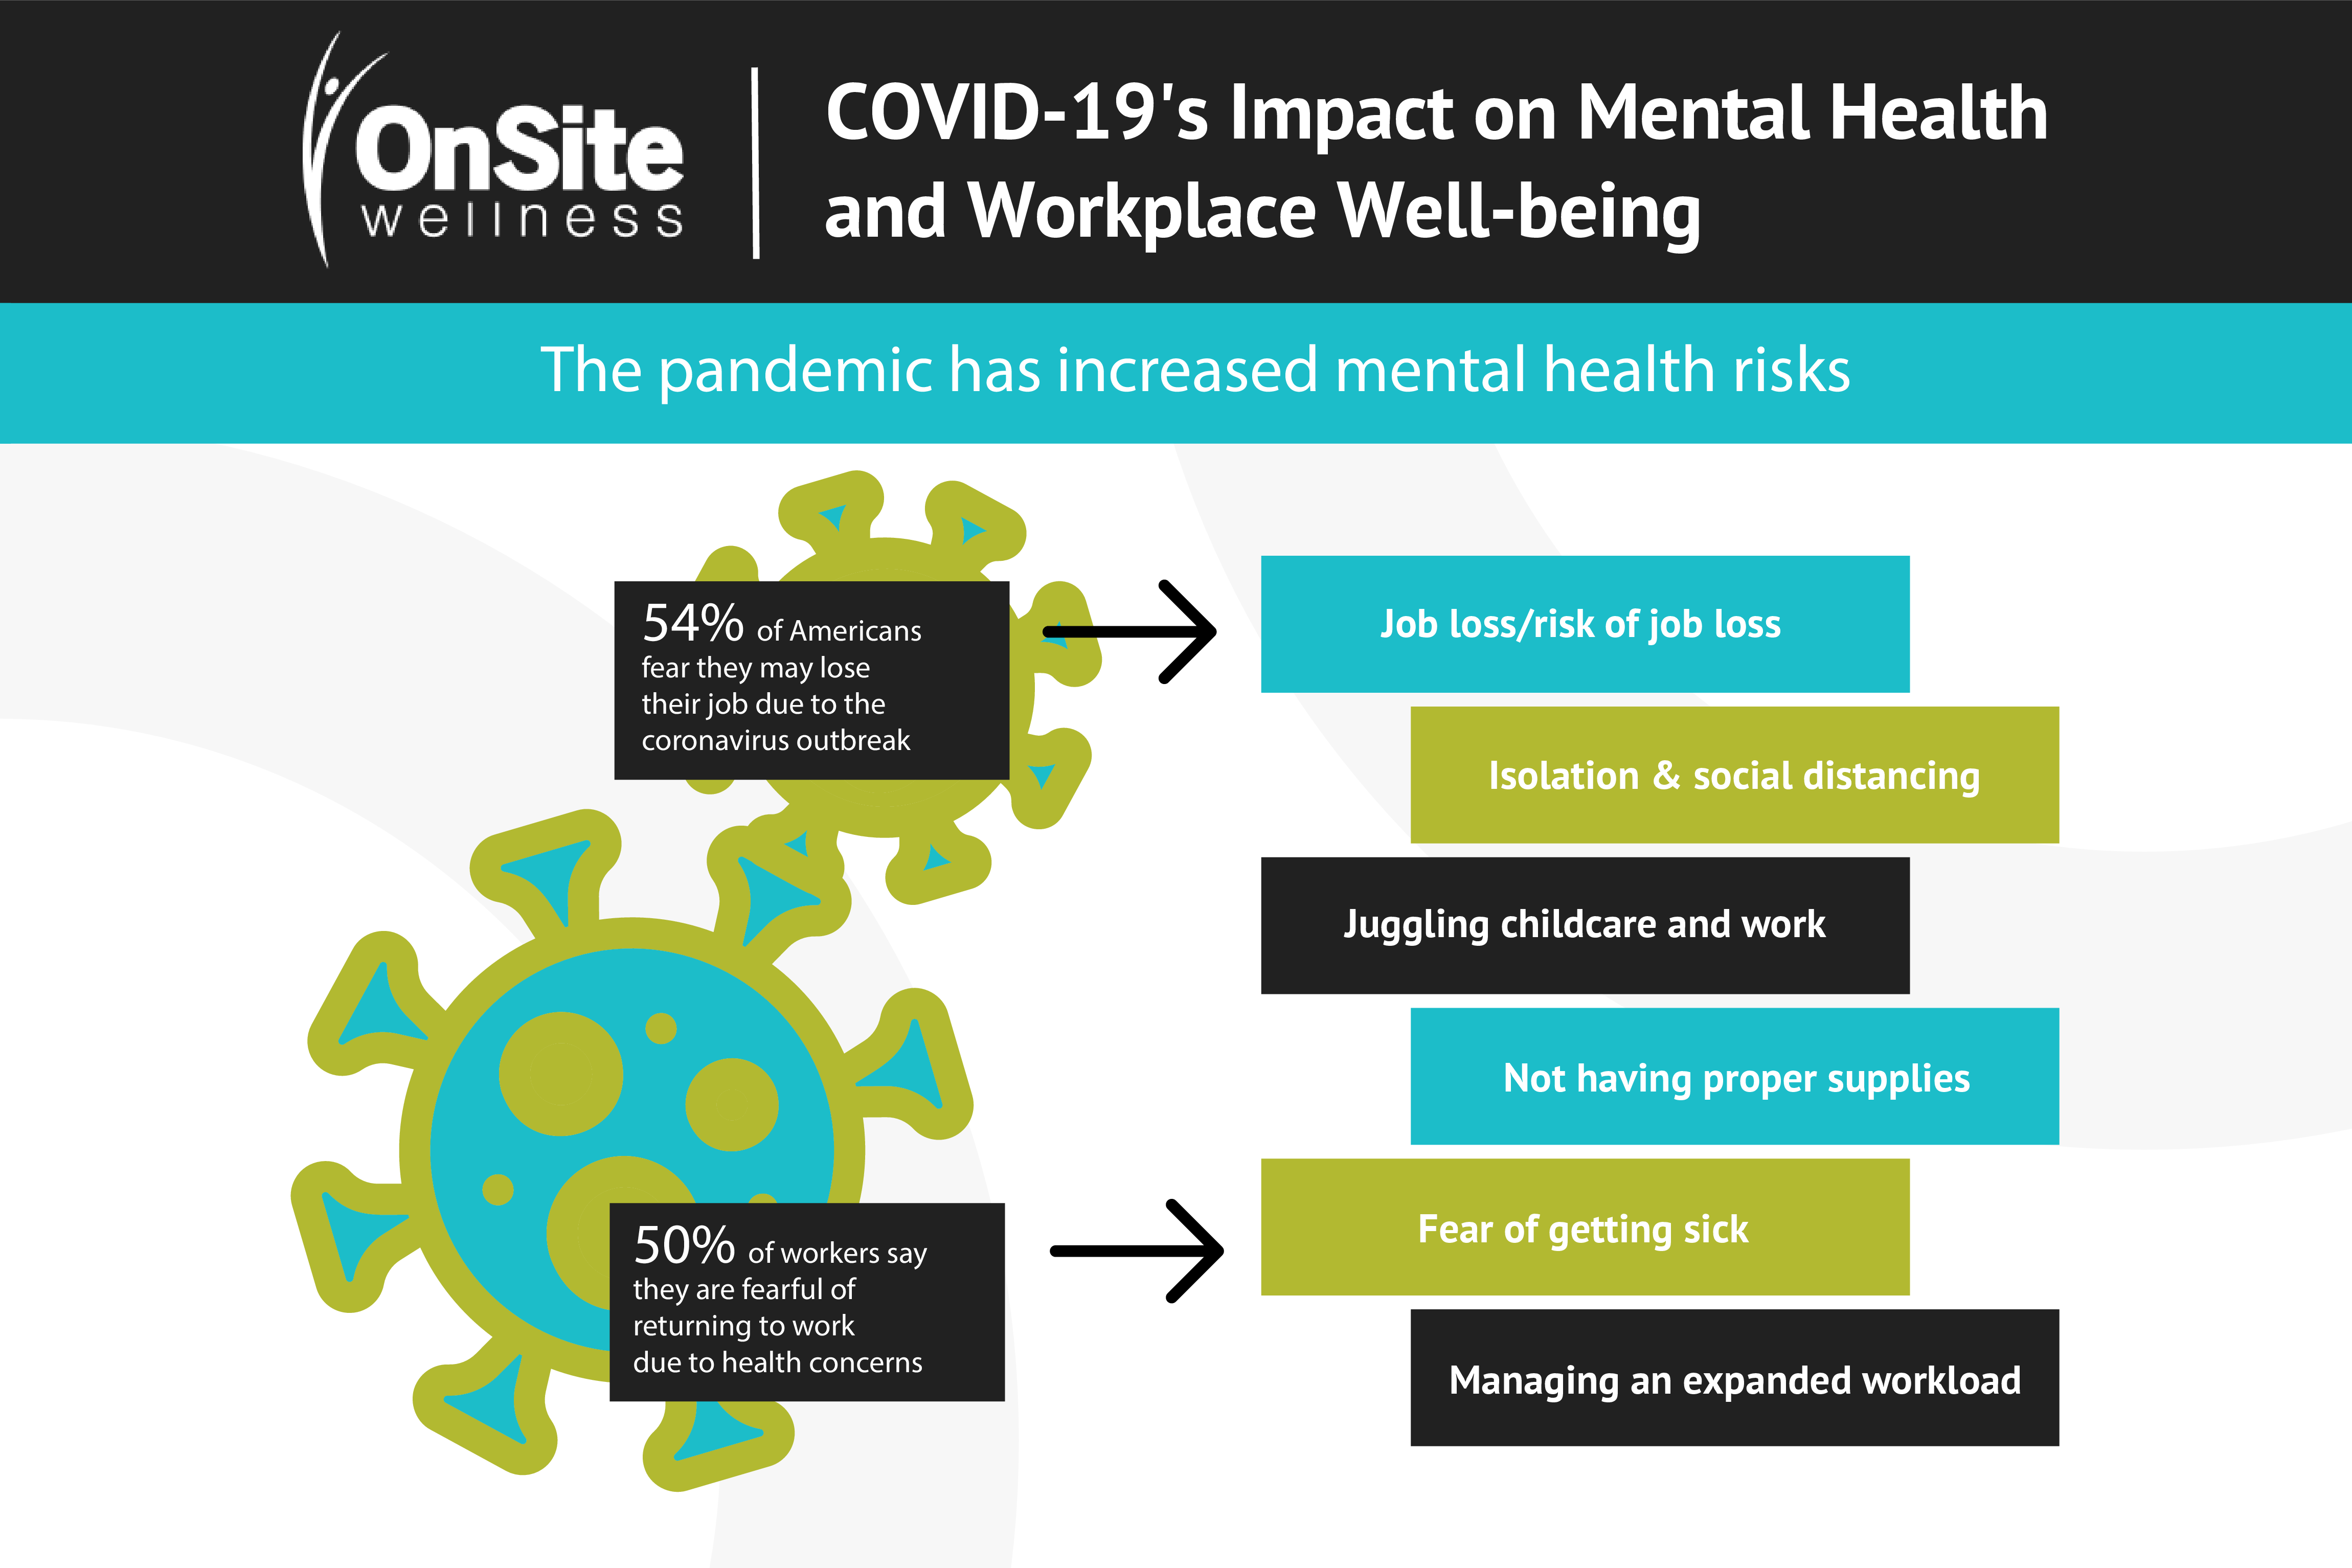 COVID-19 & Workplace Well-being: Increased Mental Health Risks